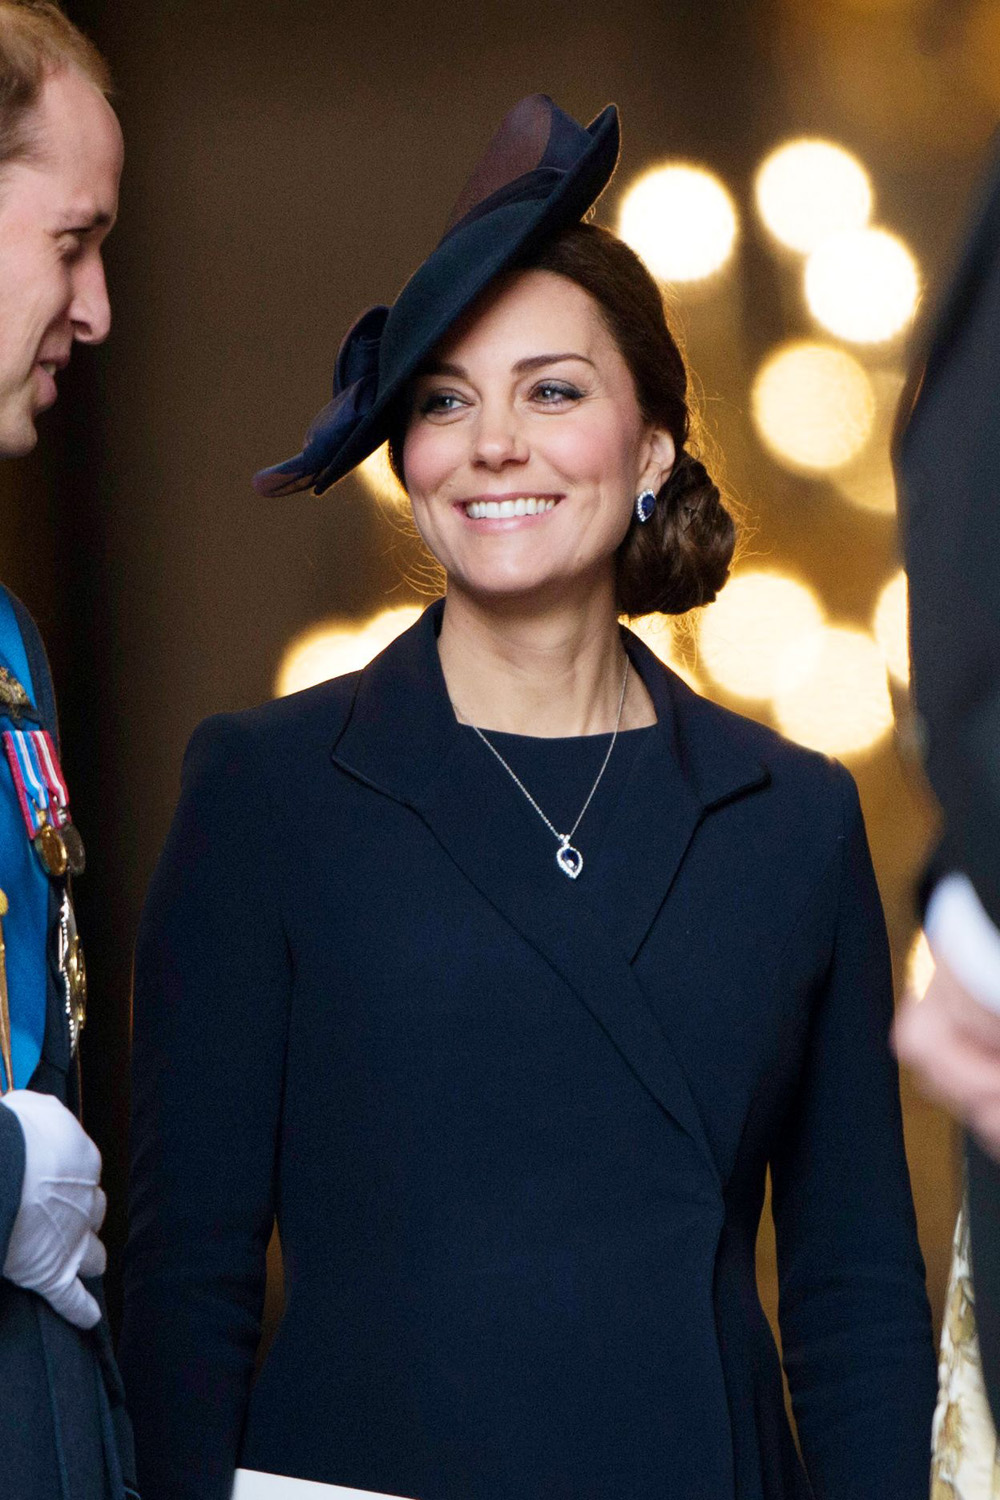 Kate Middleton's jewellery file: We decode the Duchess's jewels